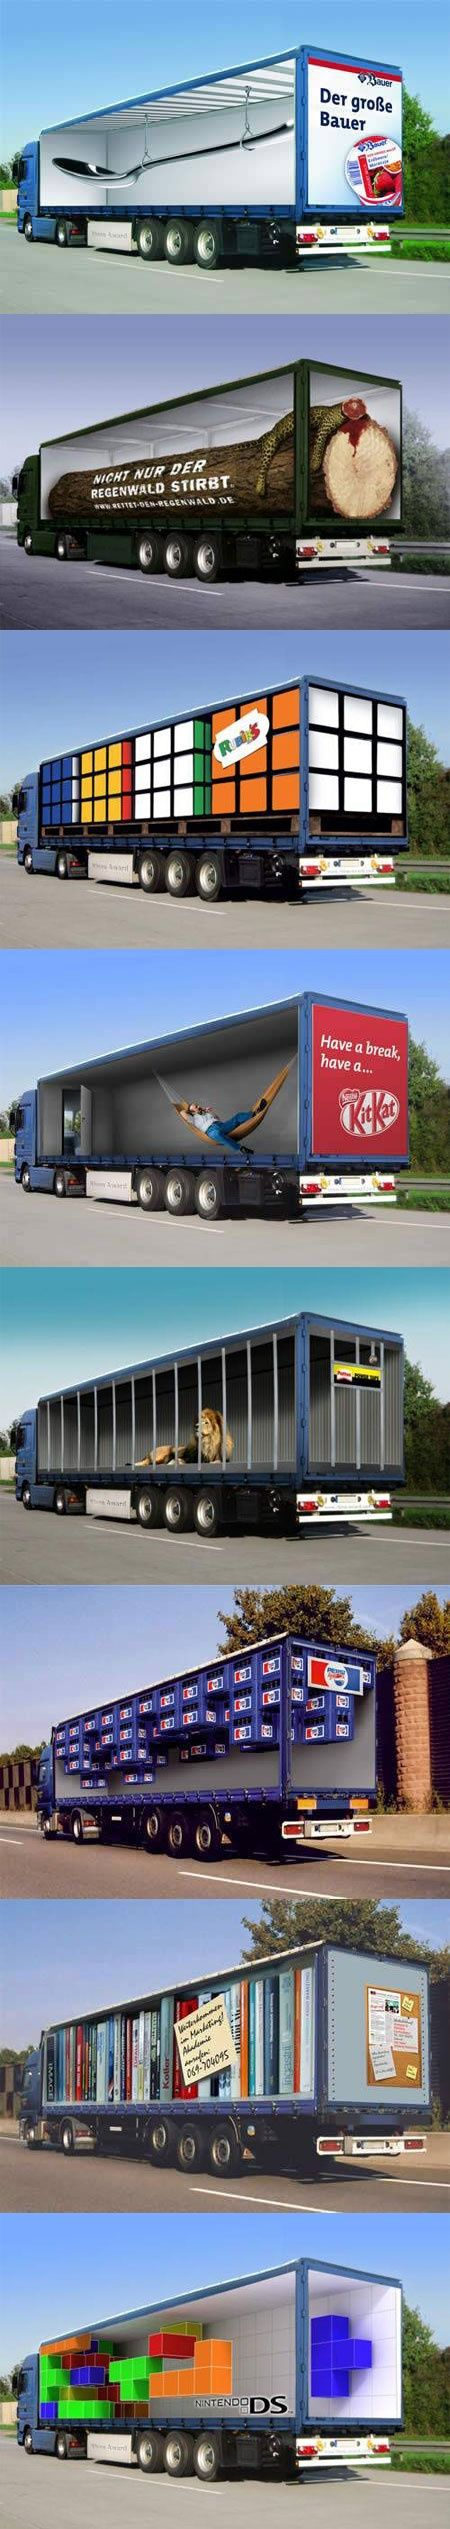 Creative truck advertisement. http://how2.releasemyad.com/2014/12/20-most-terrific-and-innovative-pinterest-advertising-visuals/